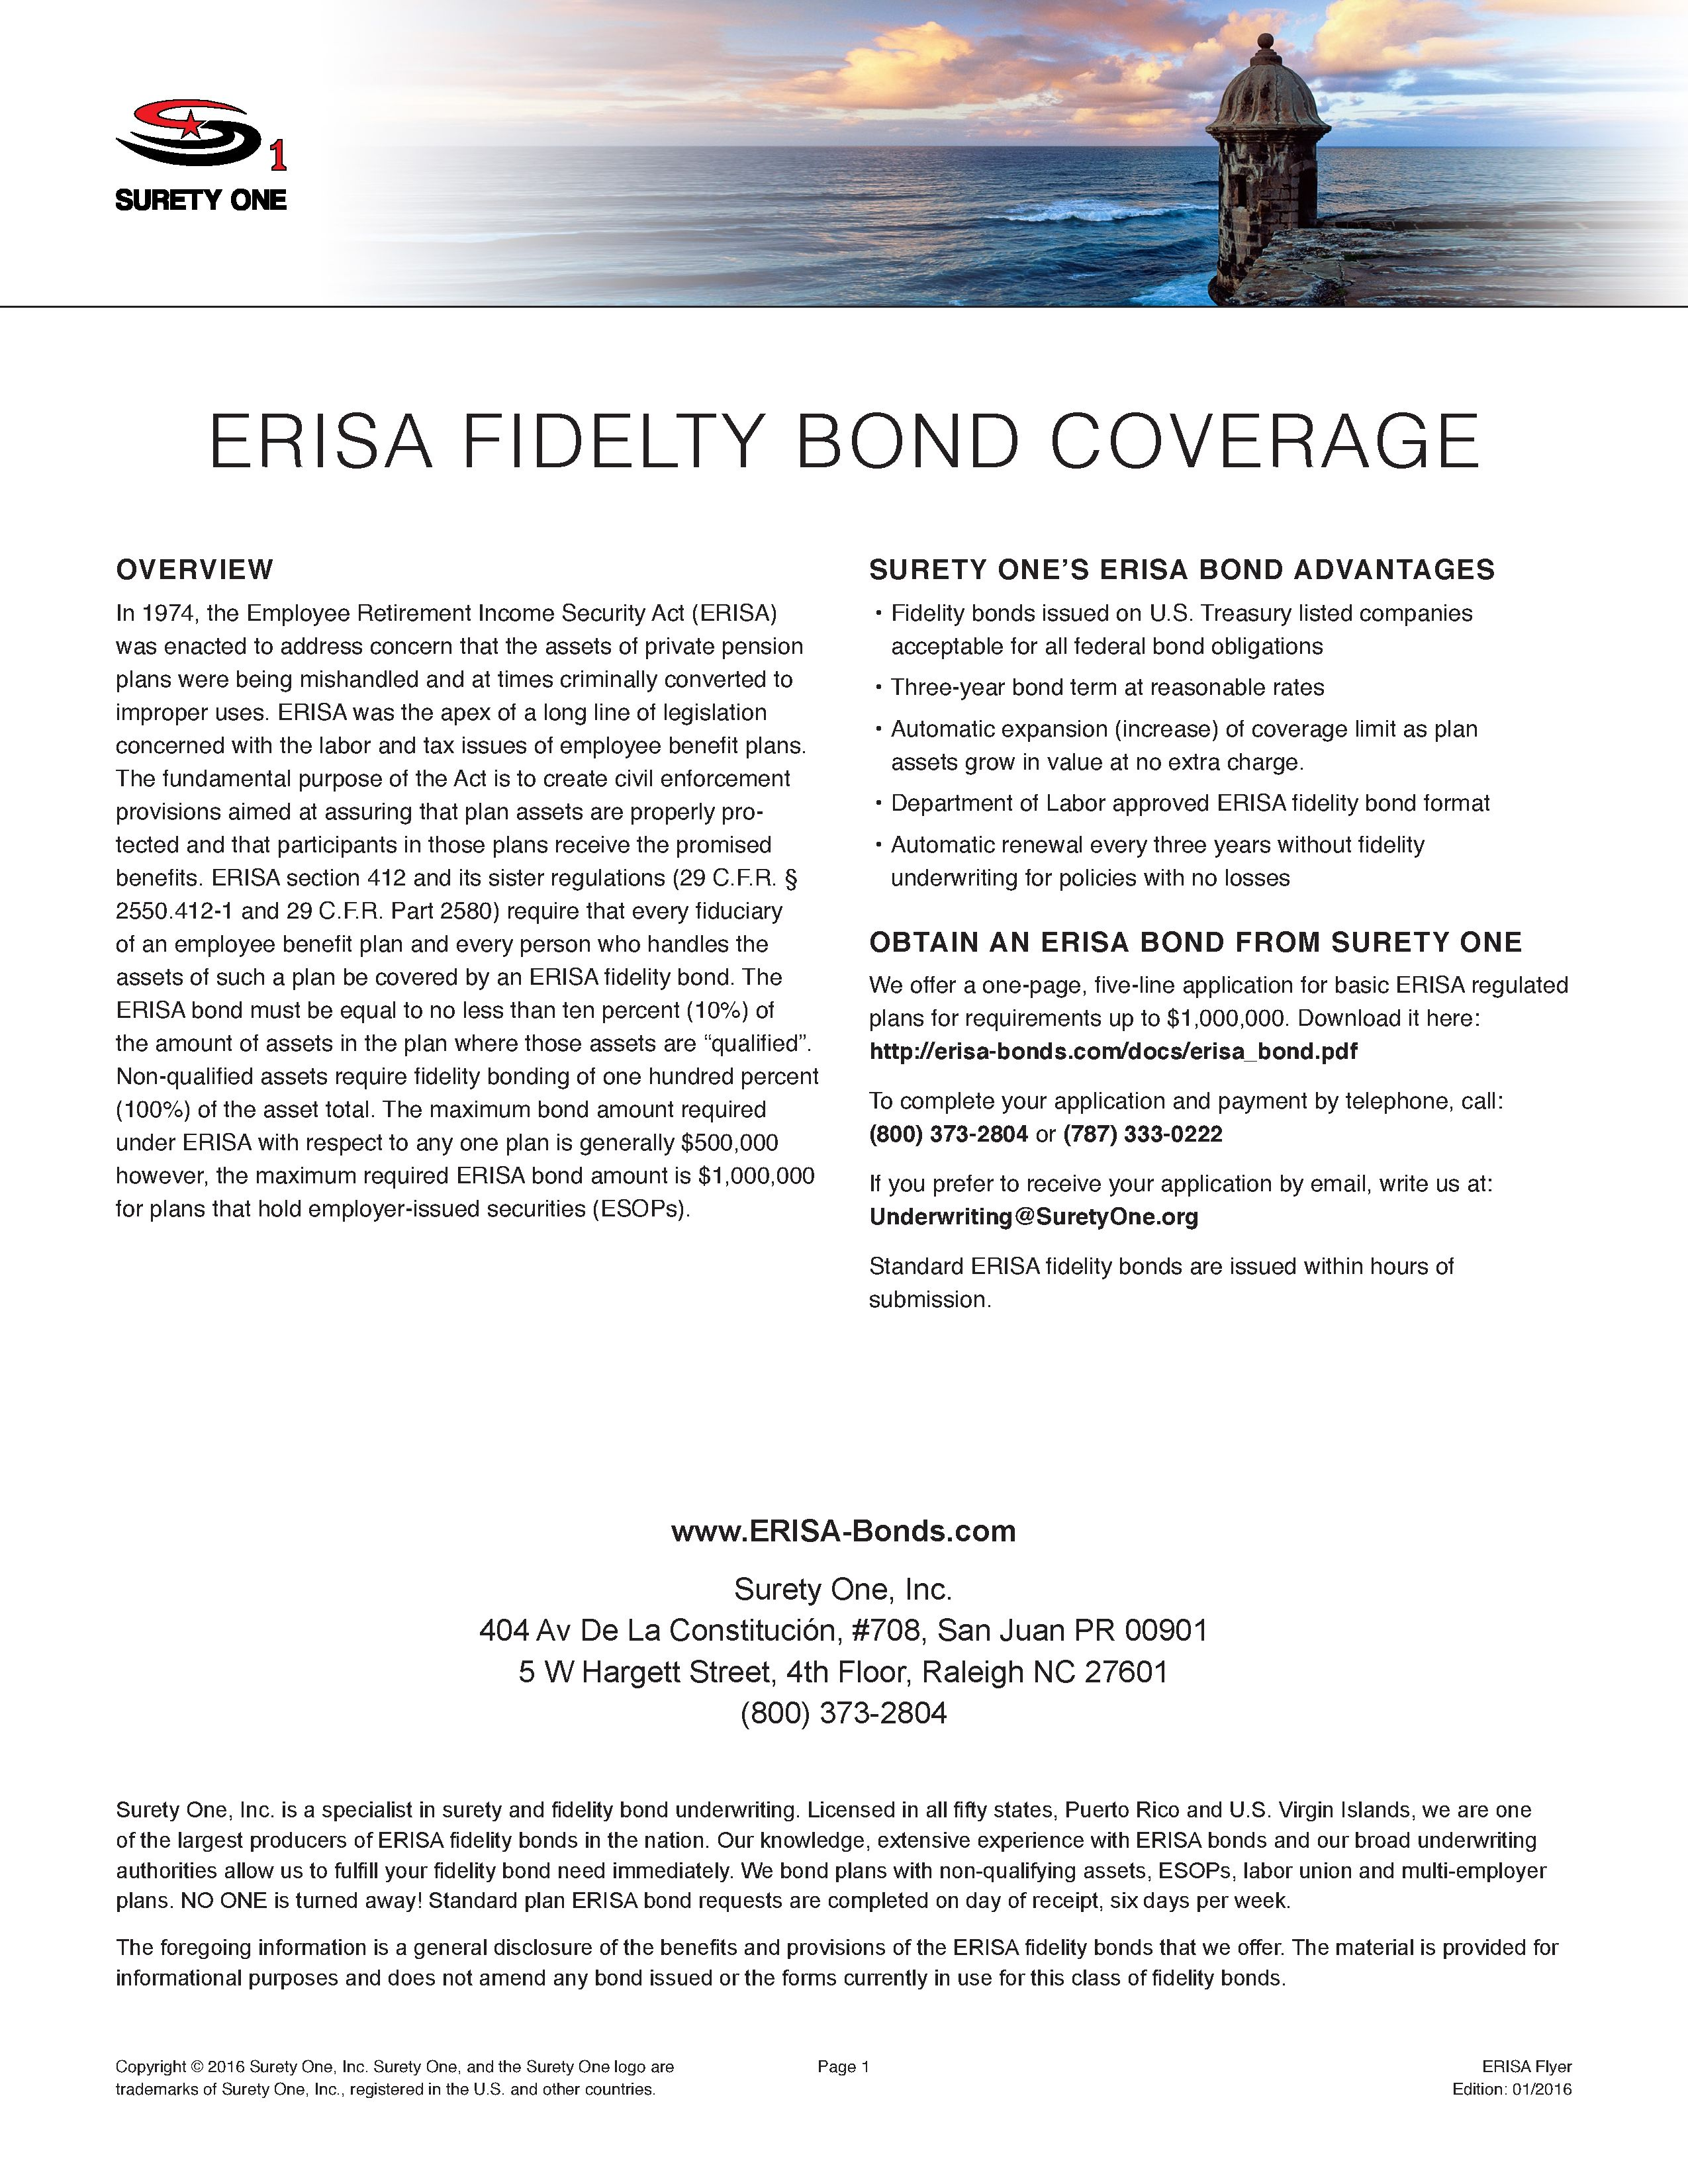 Erisa Fidelity Bond Highlights Bonding For All Classes Of Business